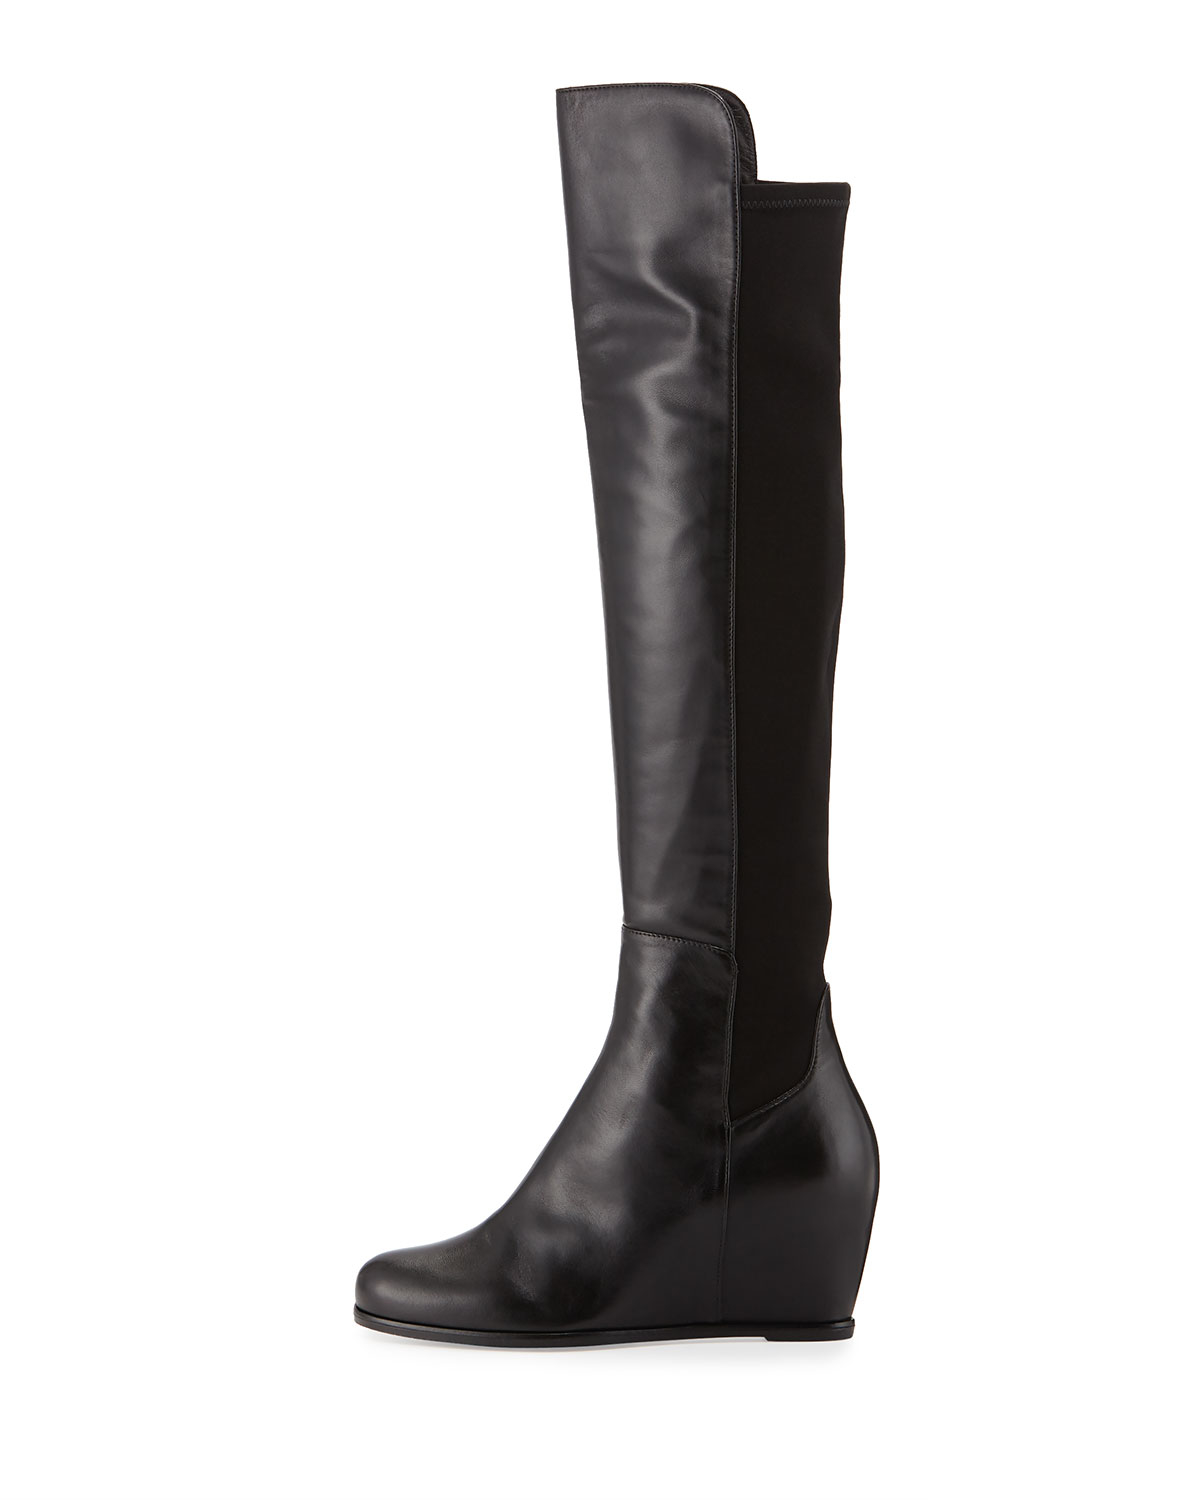 Black Over The Knee Wedge Boots - Yu Boots